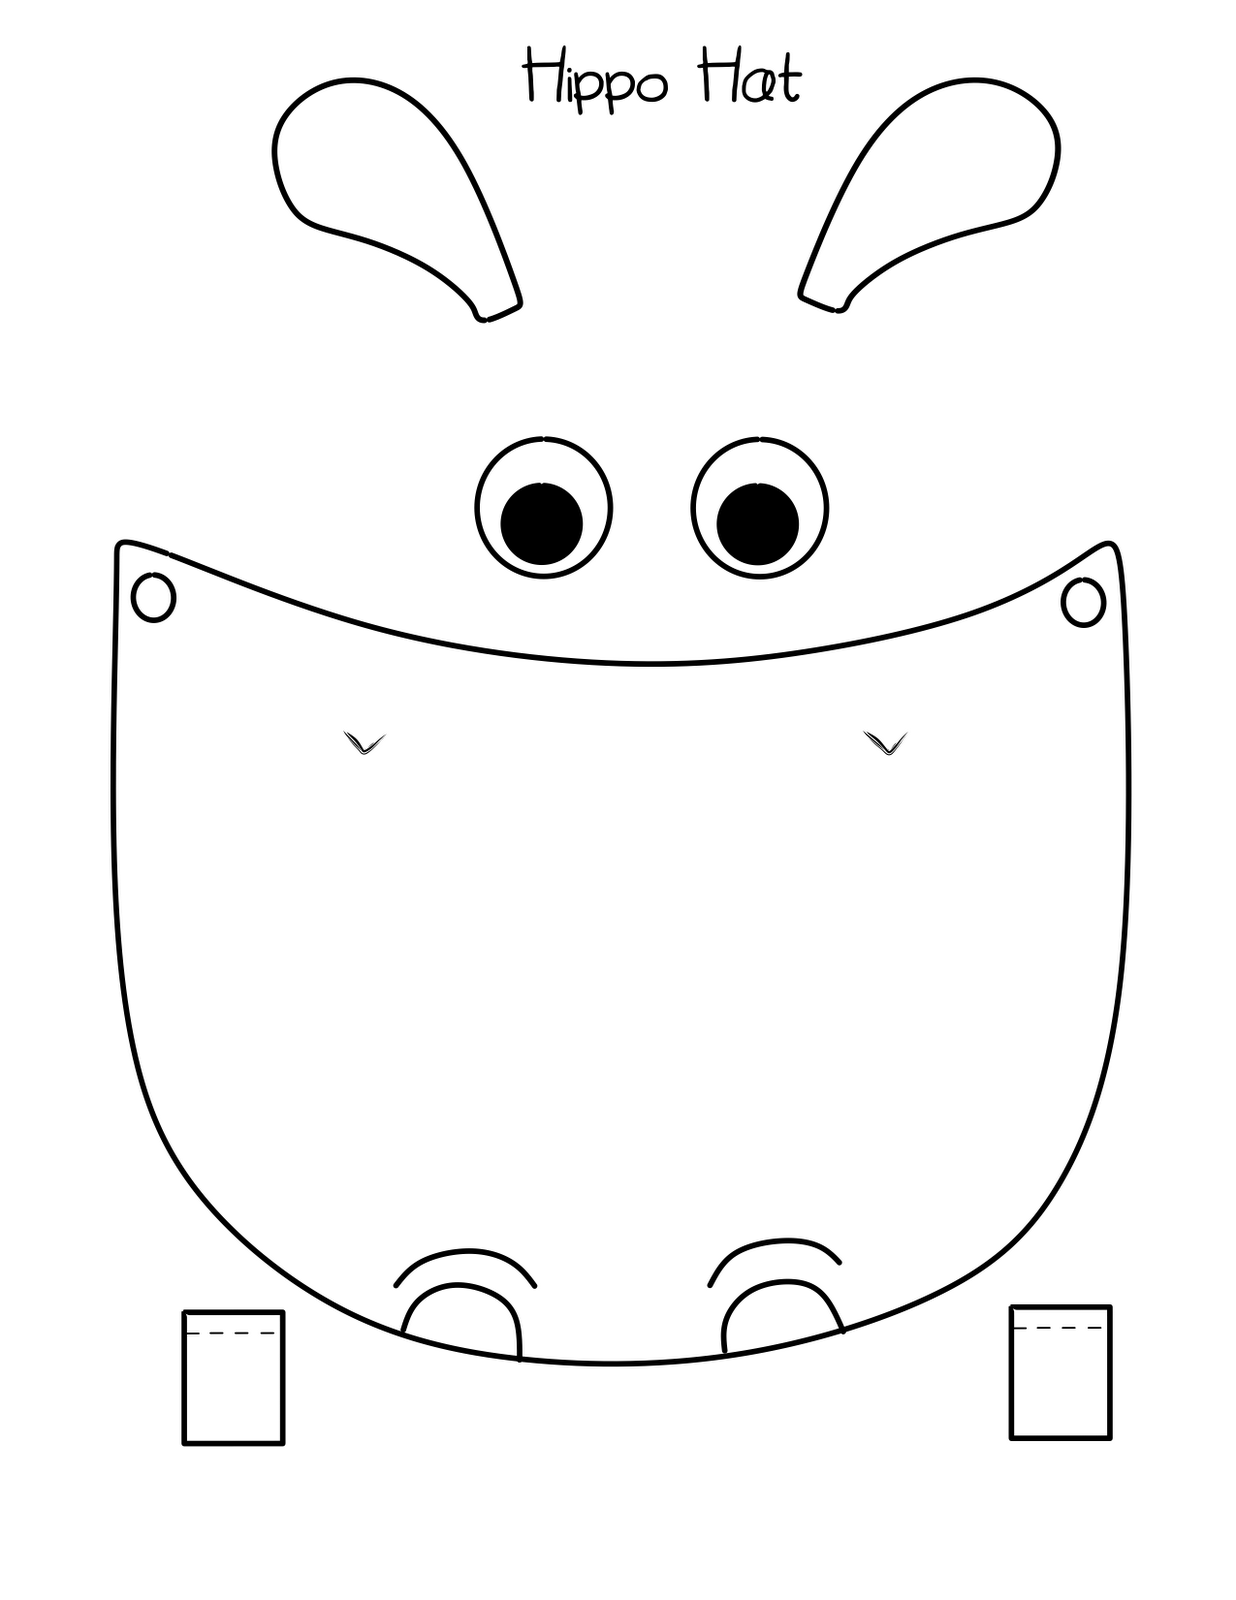 bust out your crayons Hippo Hat Free printable